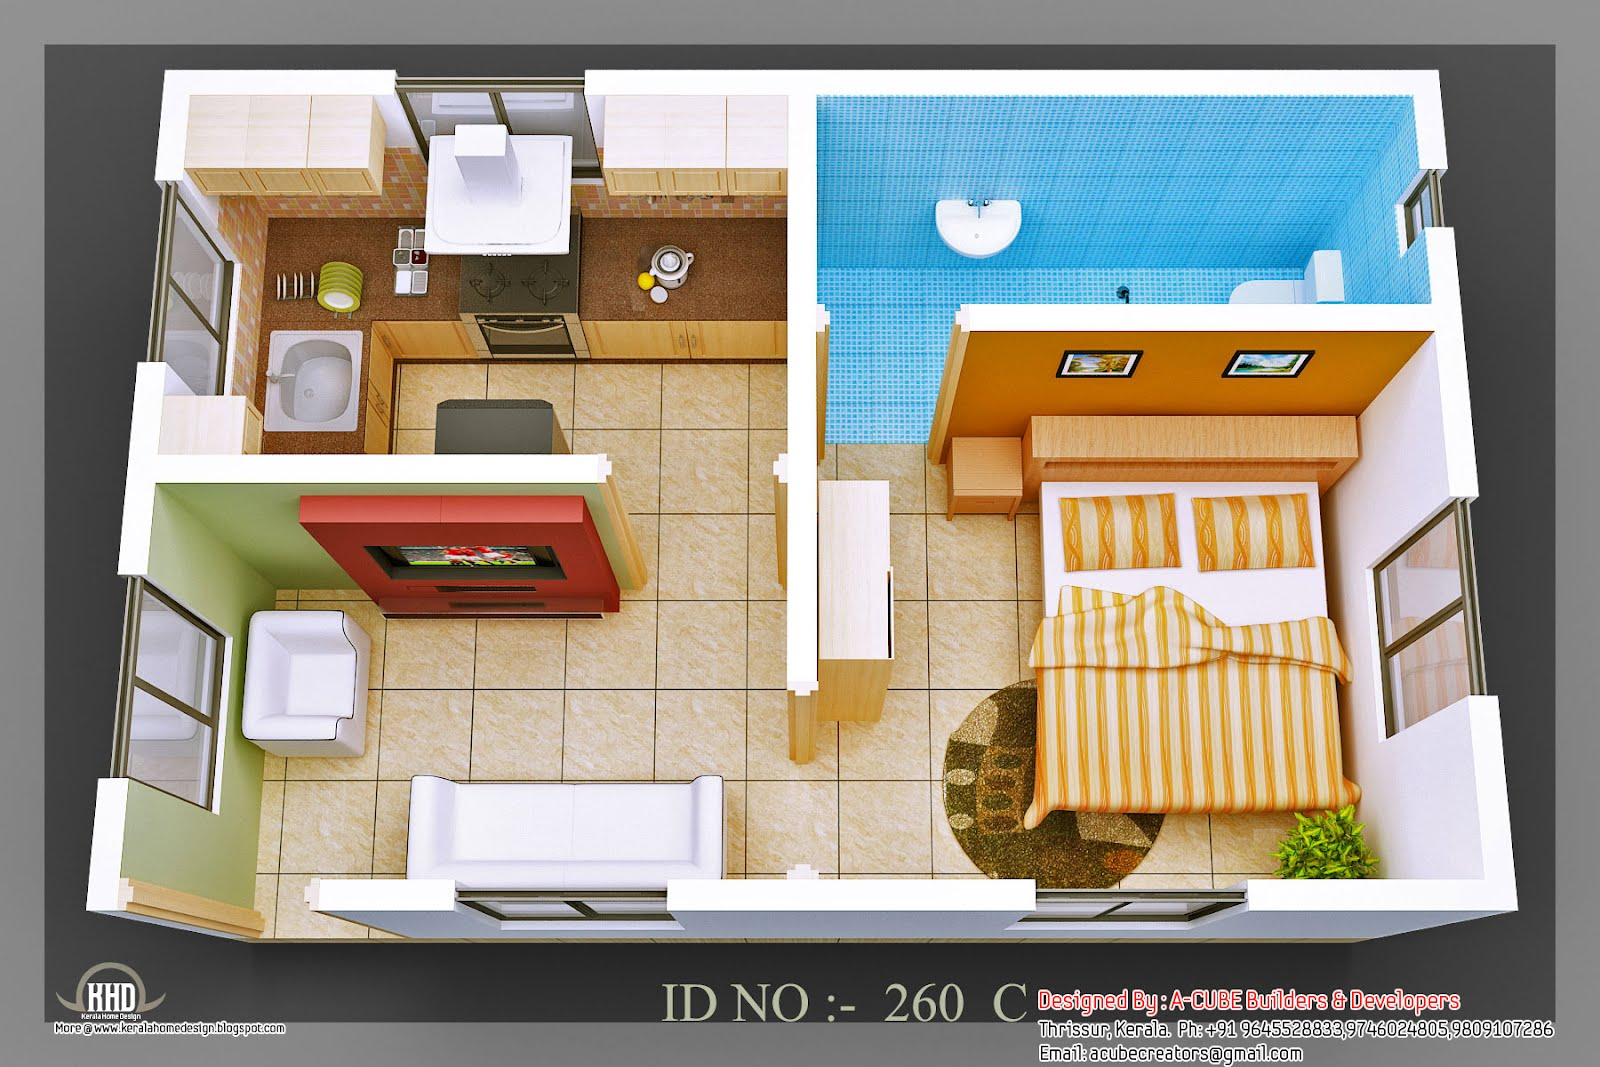 3d isometric views of small house plans a taste in heaven for 3d view of house interior design